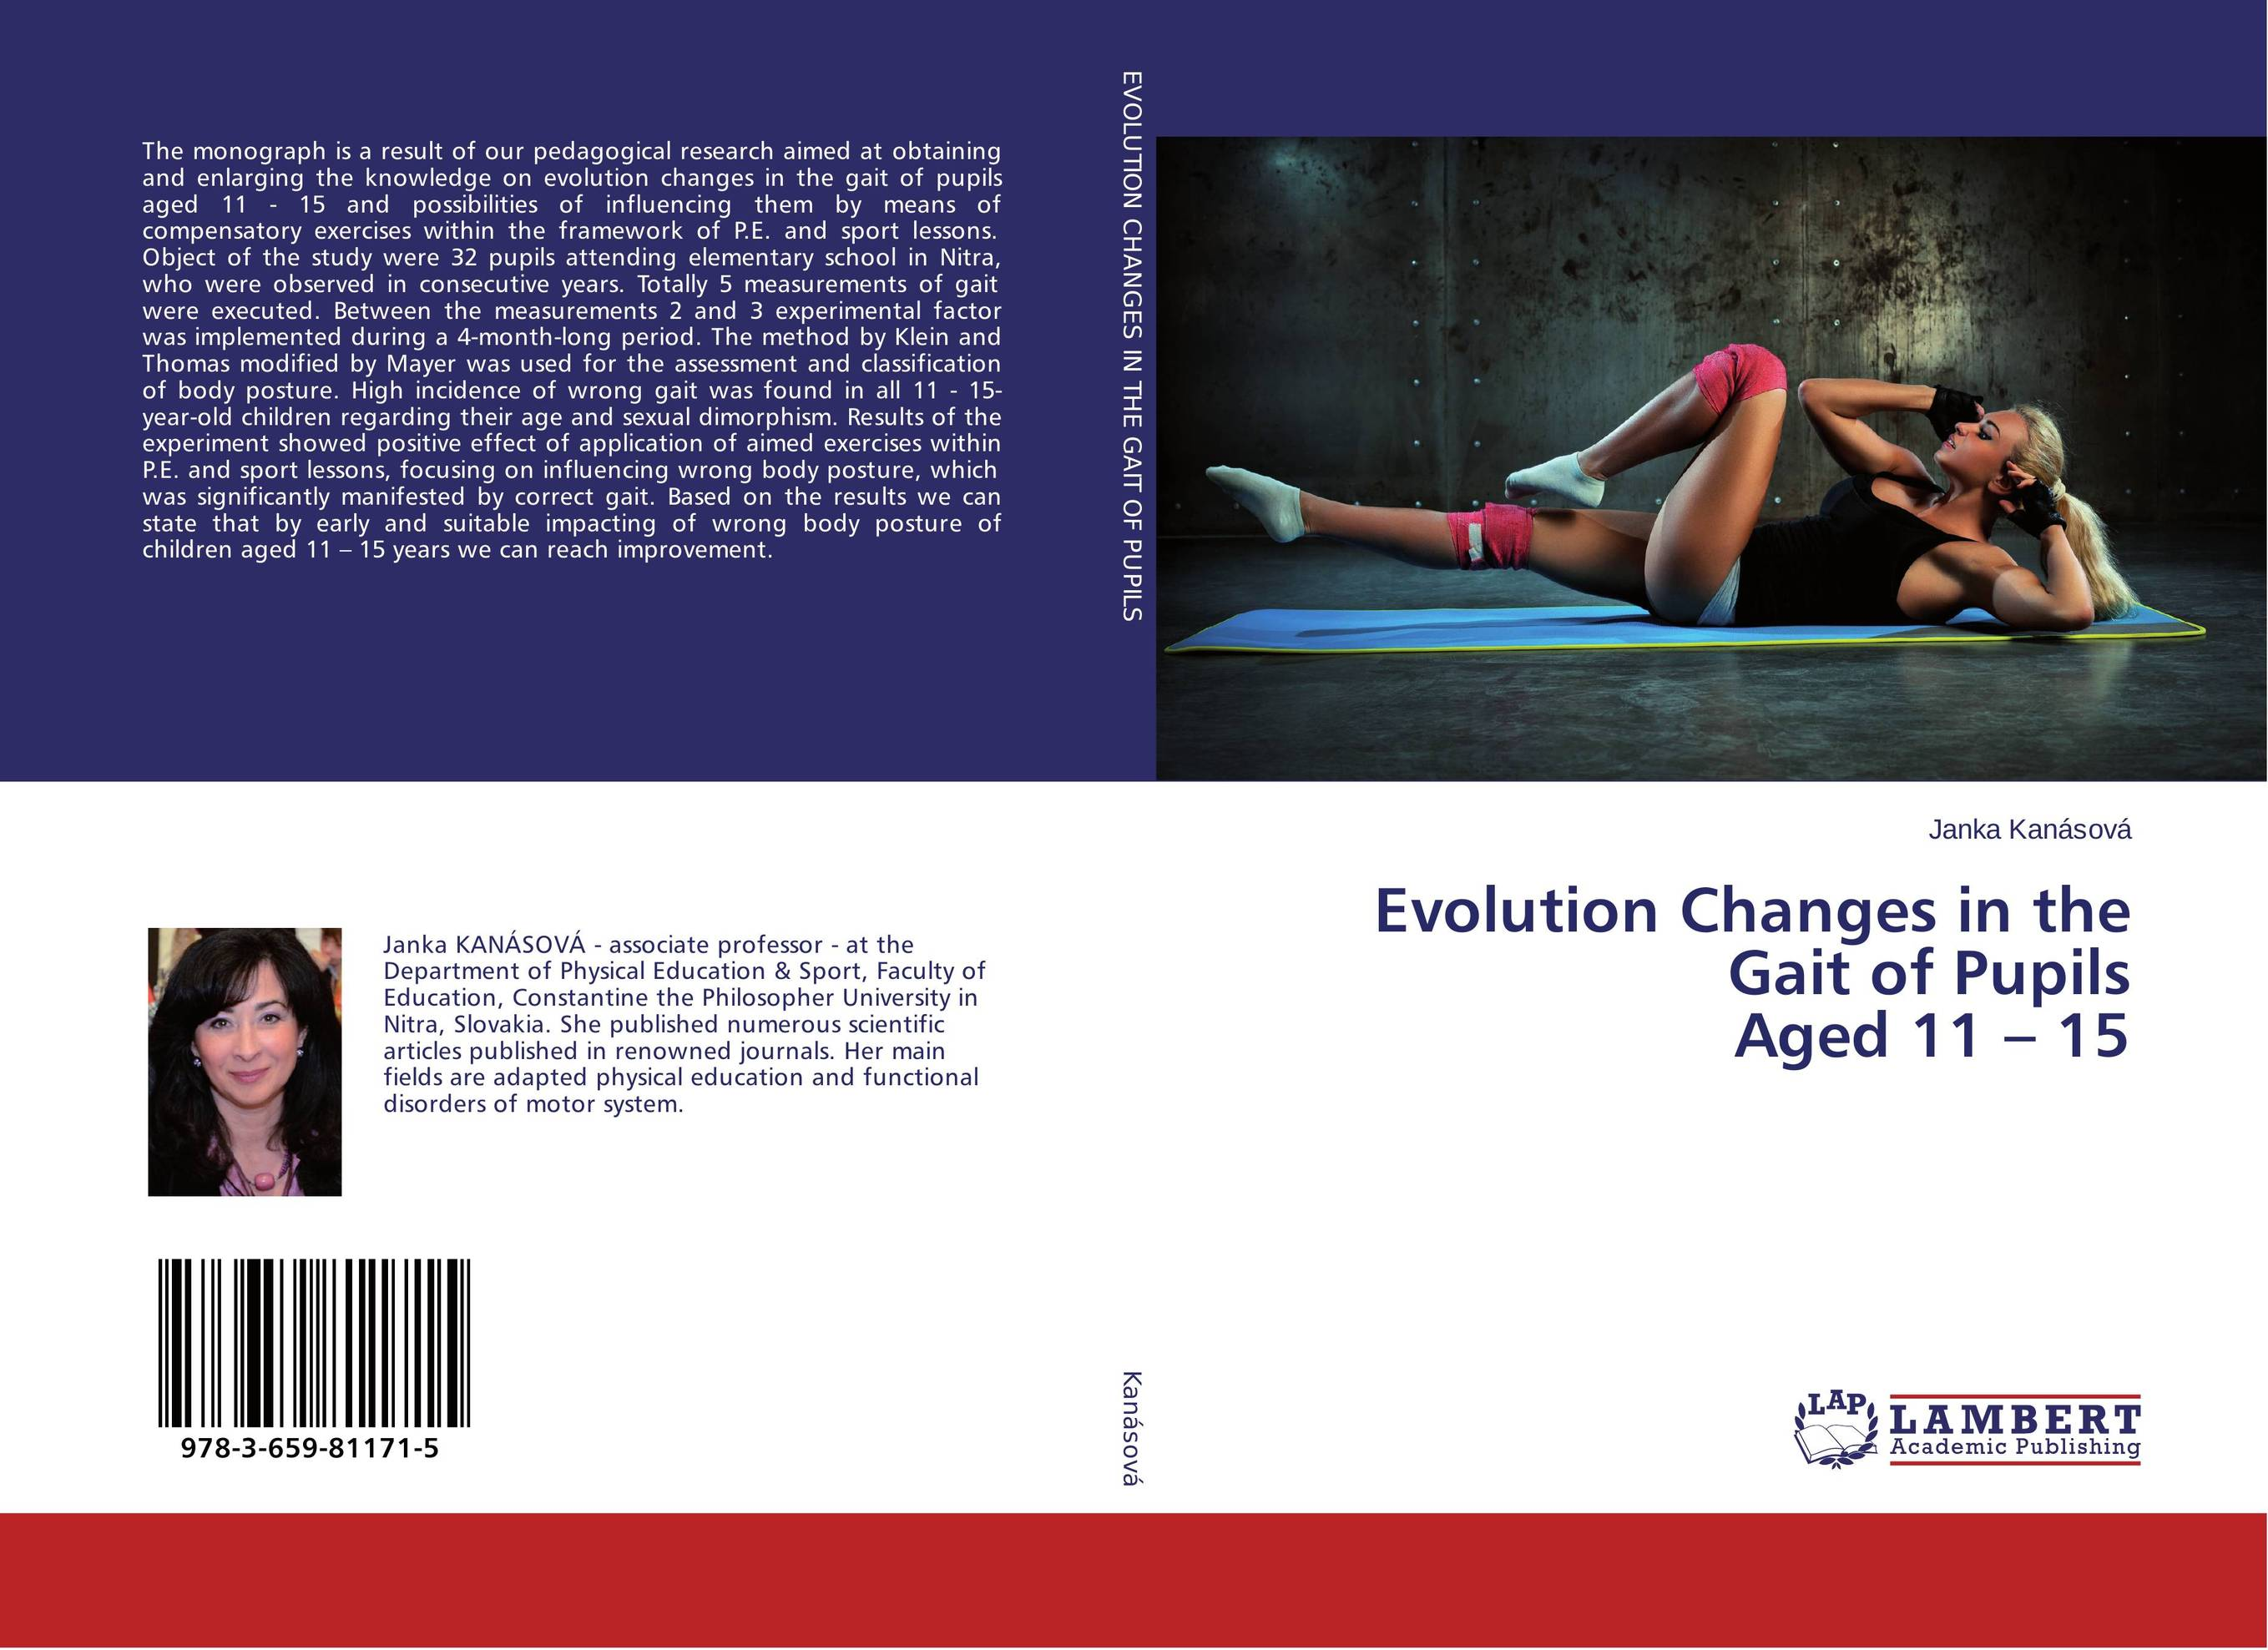 Evolution Changes in the Gait of Pupils Aged 11 – 15 a state of trance 15 years 2 cd